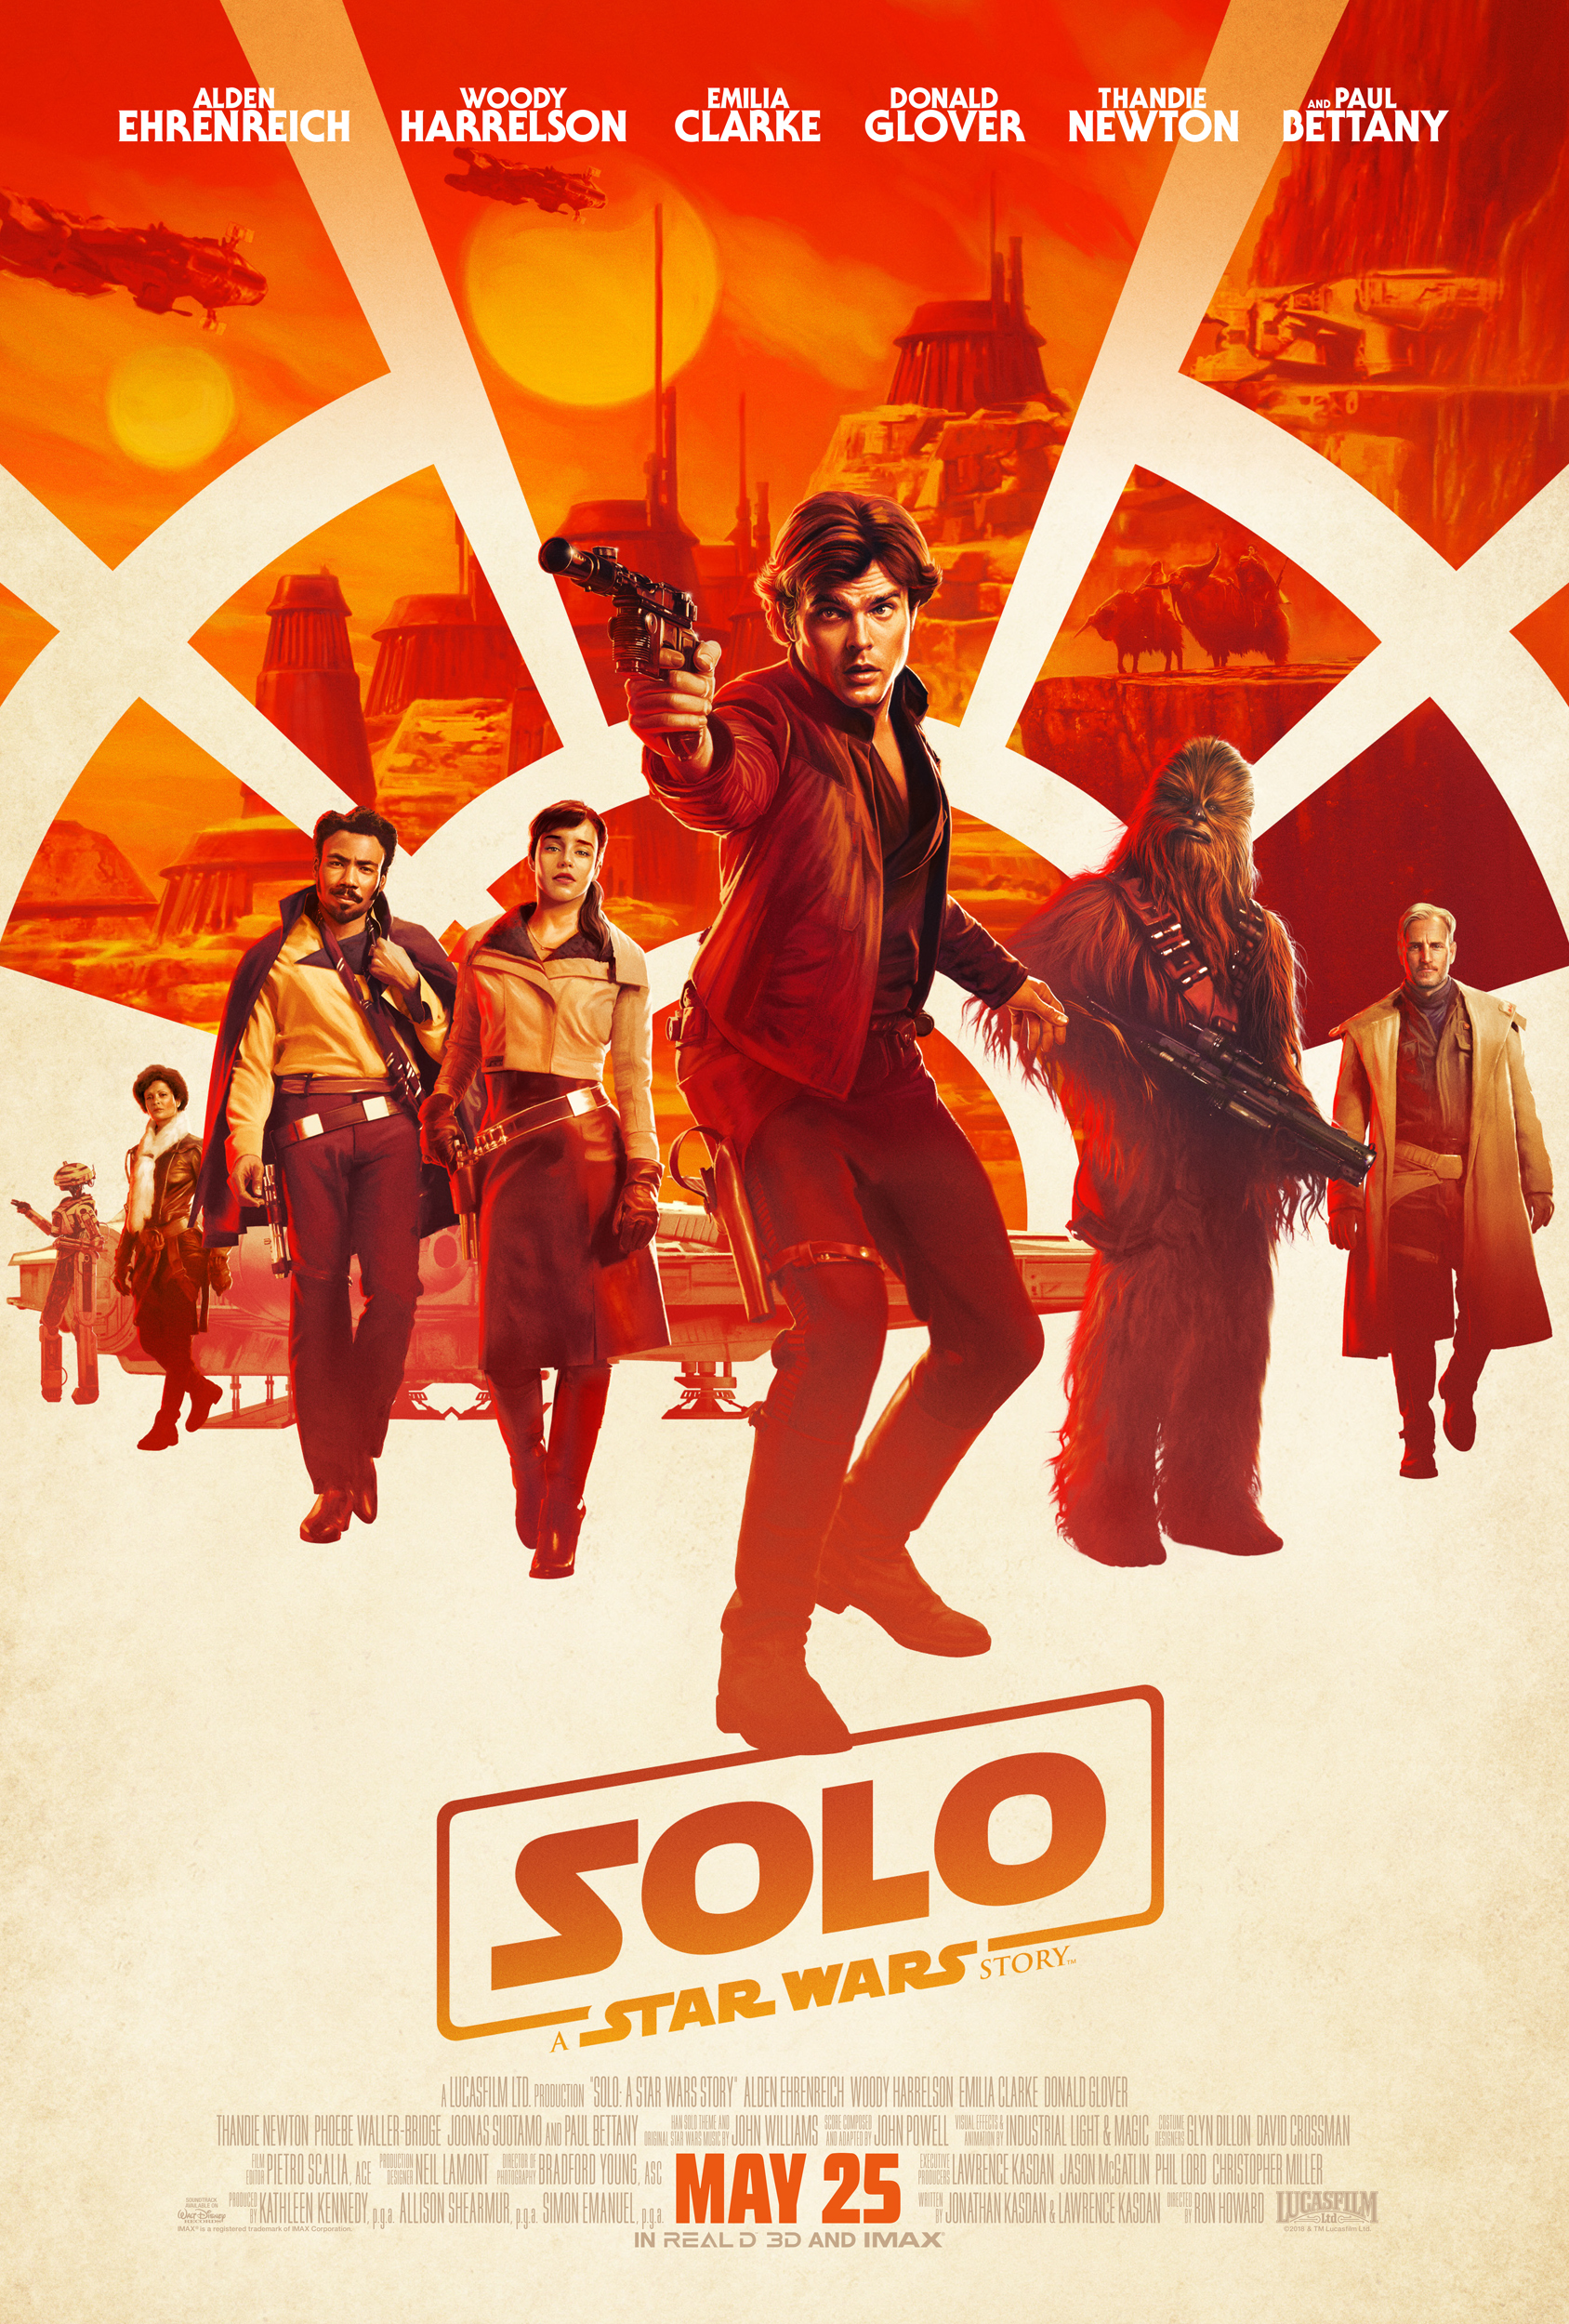 Solo: A Star Wars Story no-spoiler review. With plot twists and answers to some of our questions in the Star Wars saga, this is one movie not to miss this summer. And does Lando finally get Han's name right?